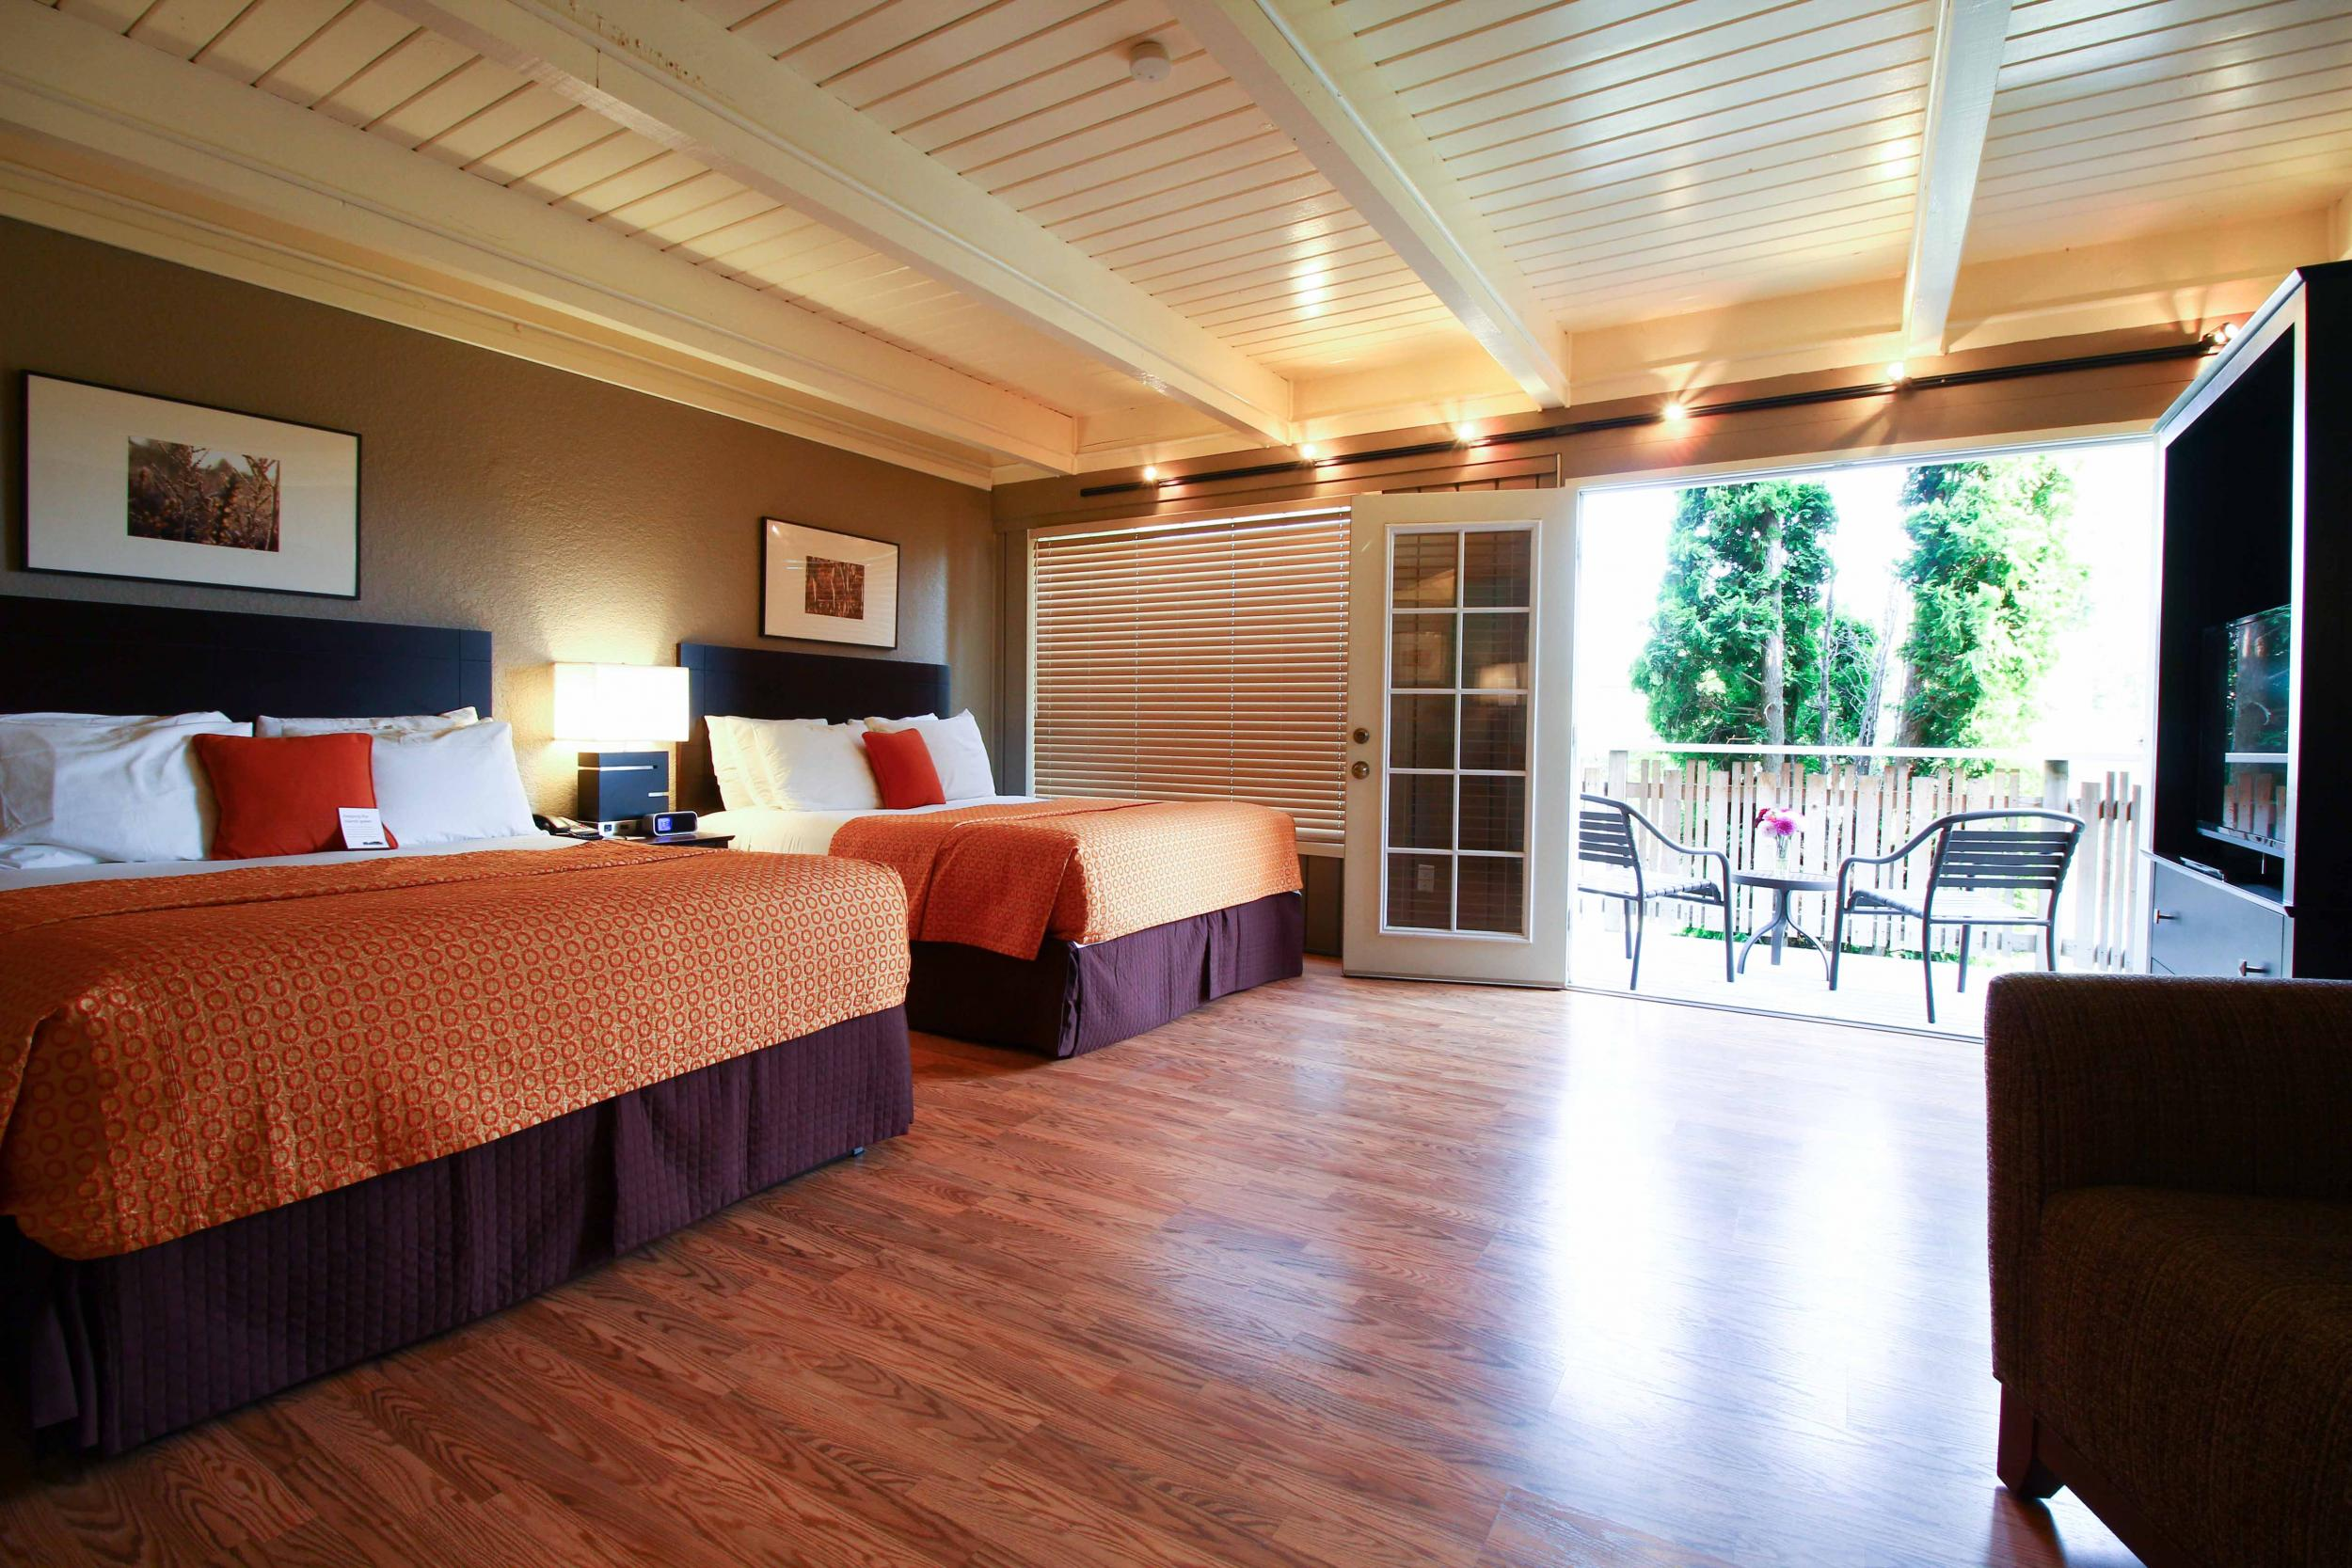 Earthbox Inn & Spa - Just four blocks away from the Friday Harbor ferry landing and in the heart of downtown, you're not far away from anything.Earthbox Inn & Spa is just one of the San Juan Island hotels but it's the only one with an indoor pool and a classic retro chic style.